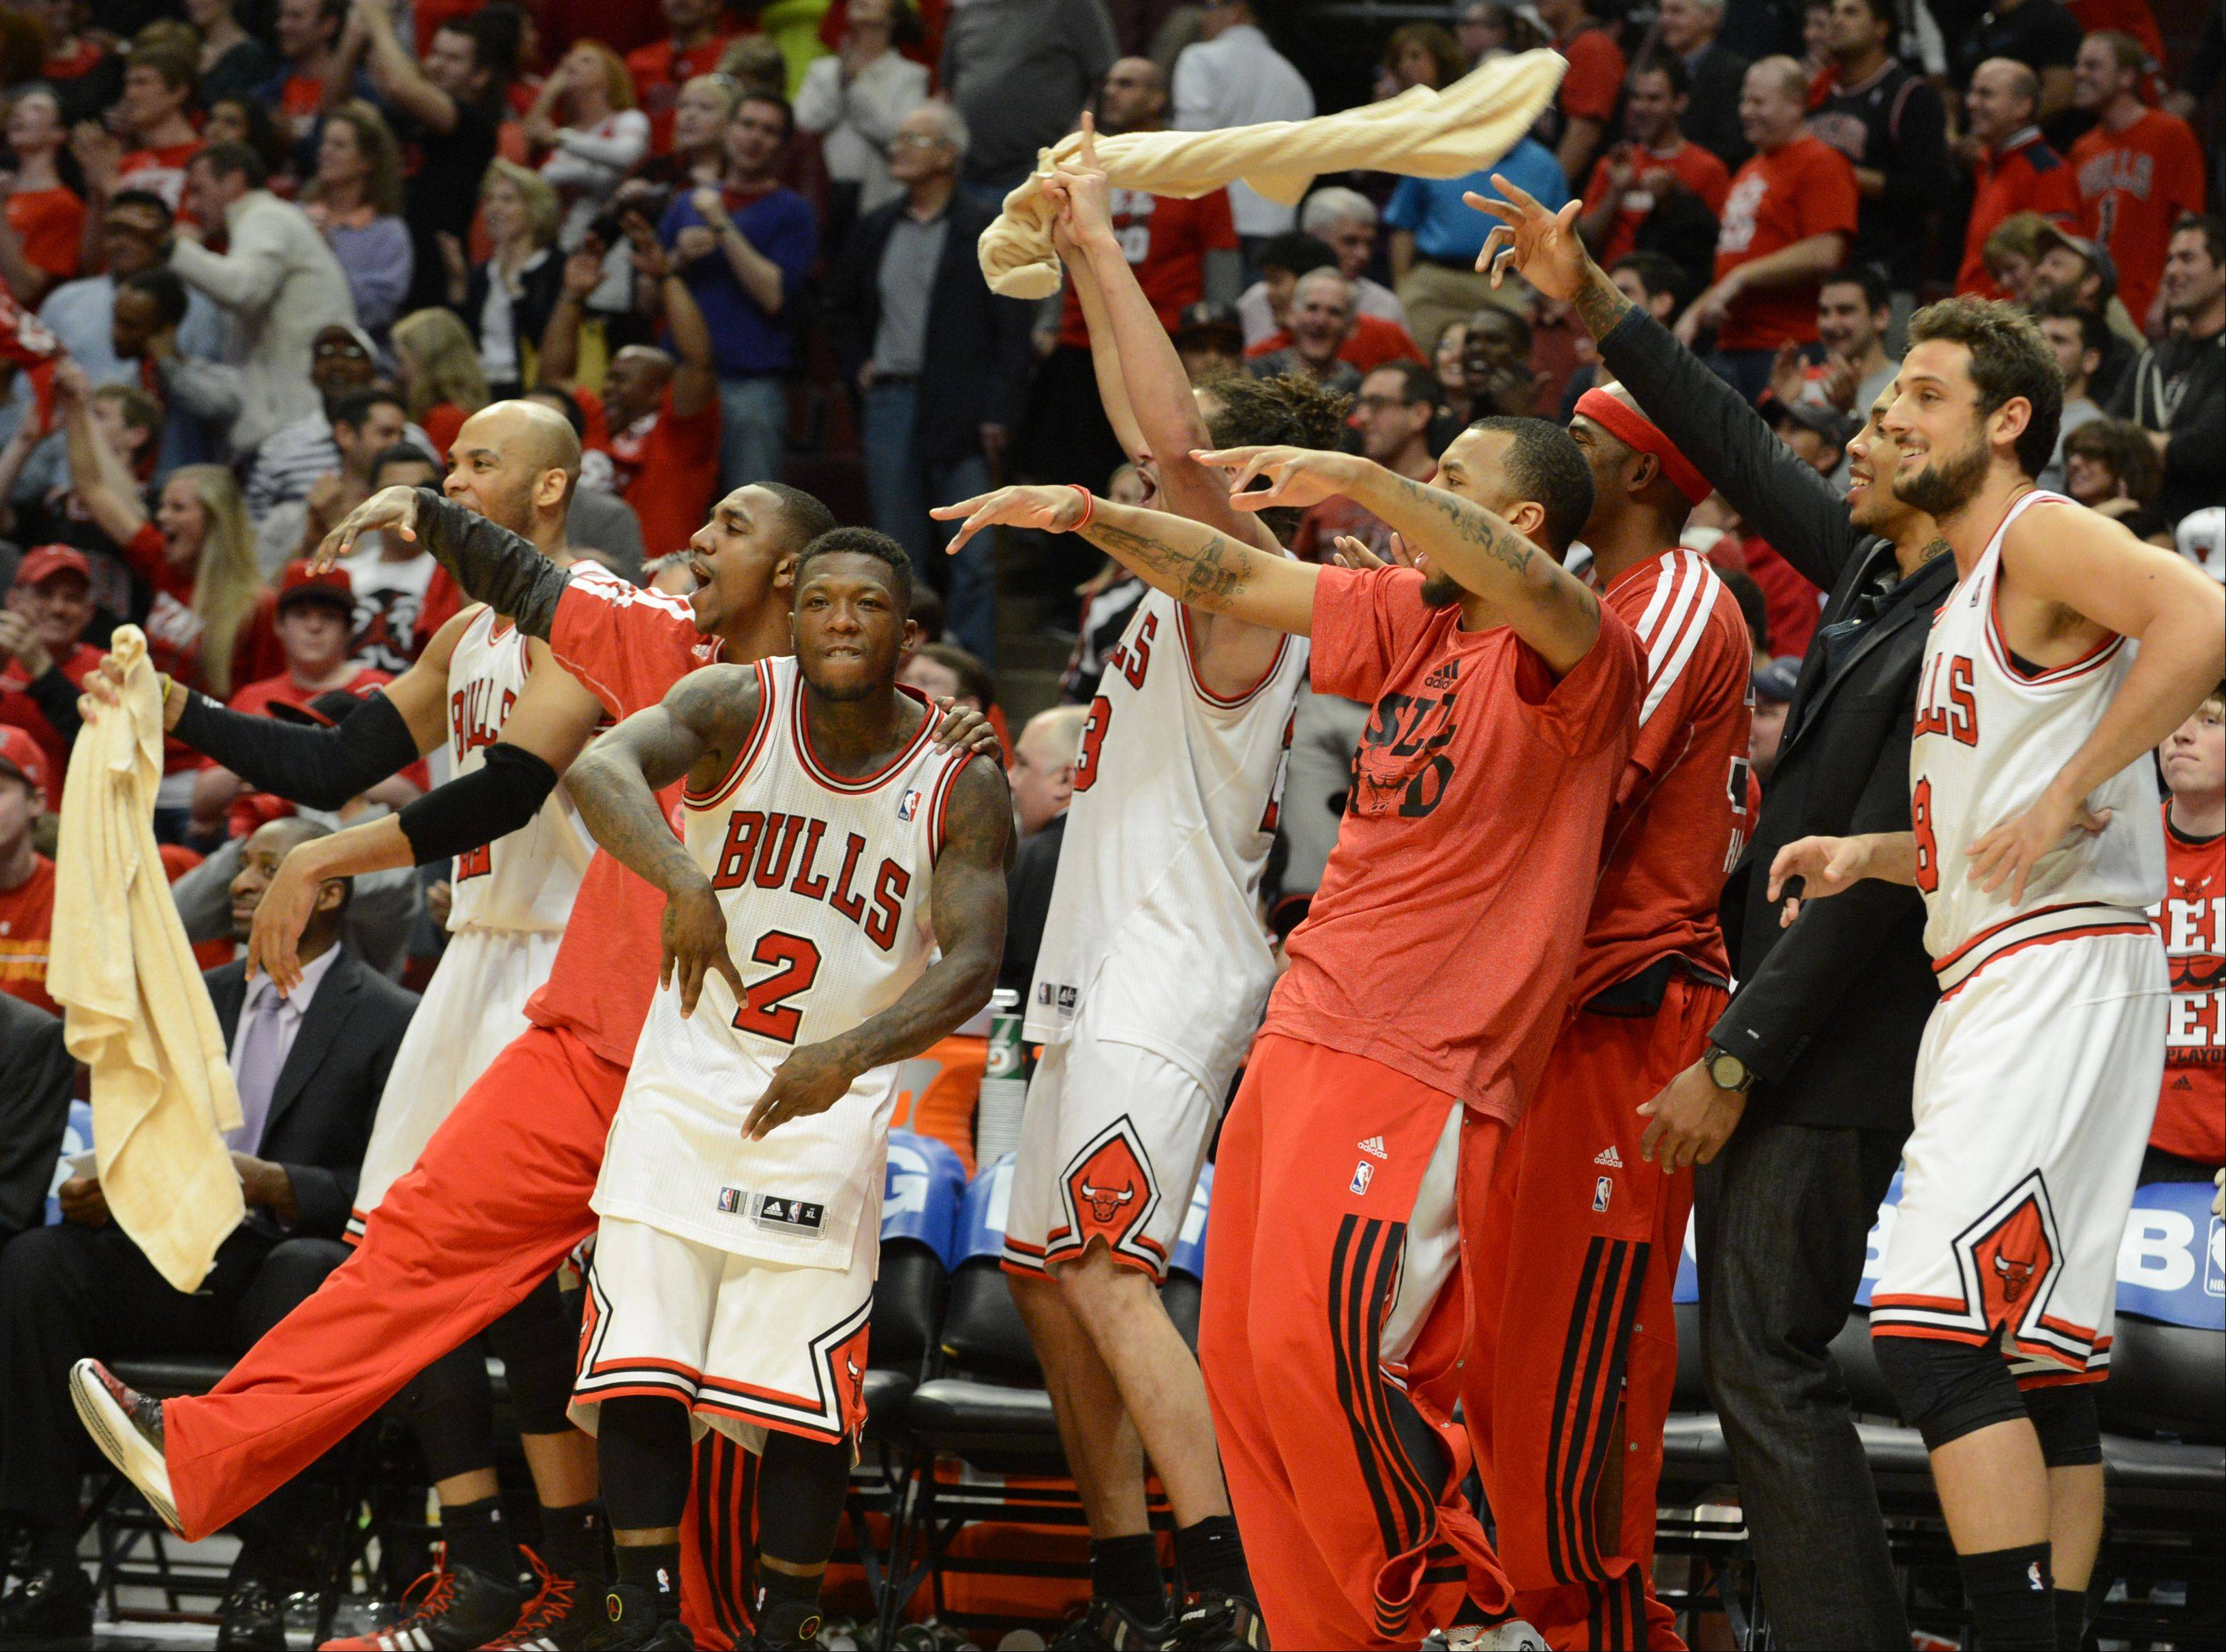 The Bulls bench is fired up late in the third overtime as the Bulls took the lead Saturday during game 4 of the first round playoff game against the Brooklyn Nets at the United Center. The Bulls won 142-134.